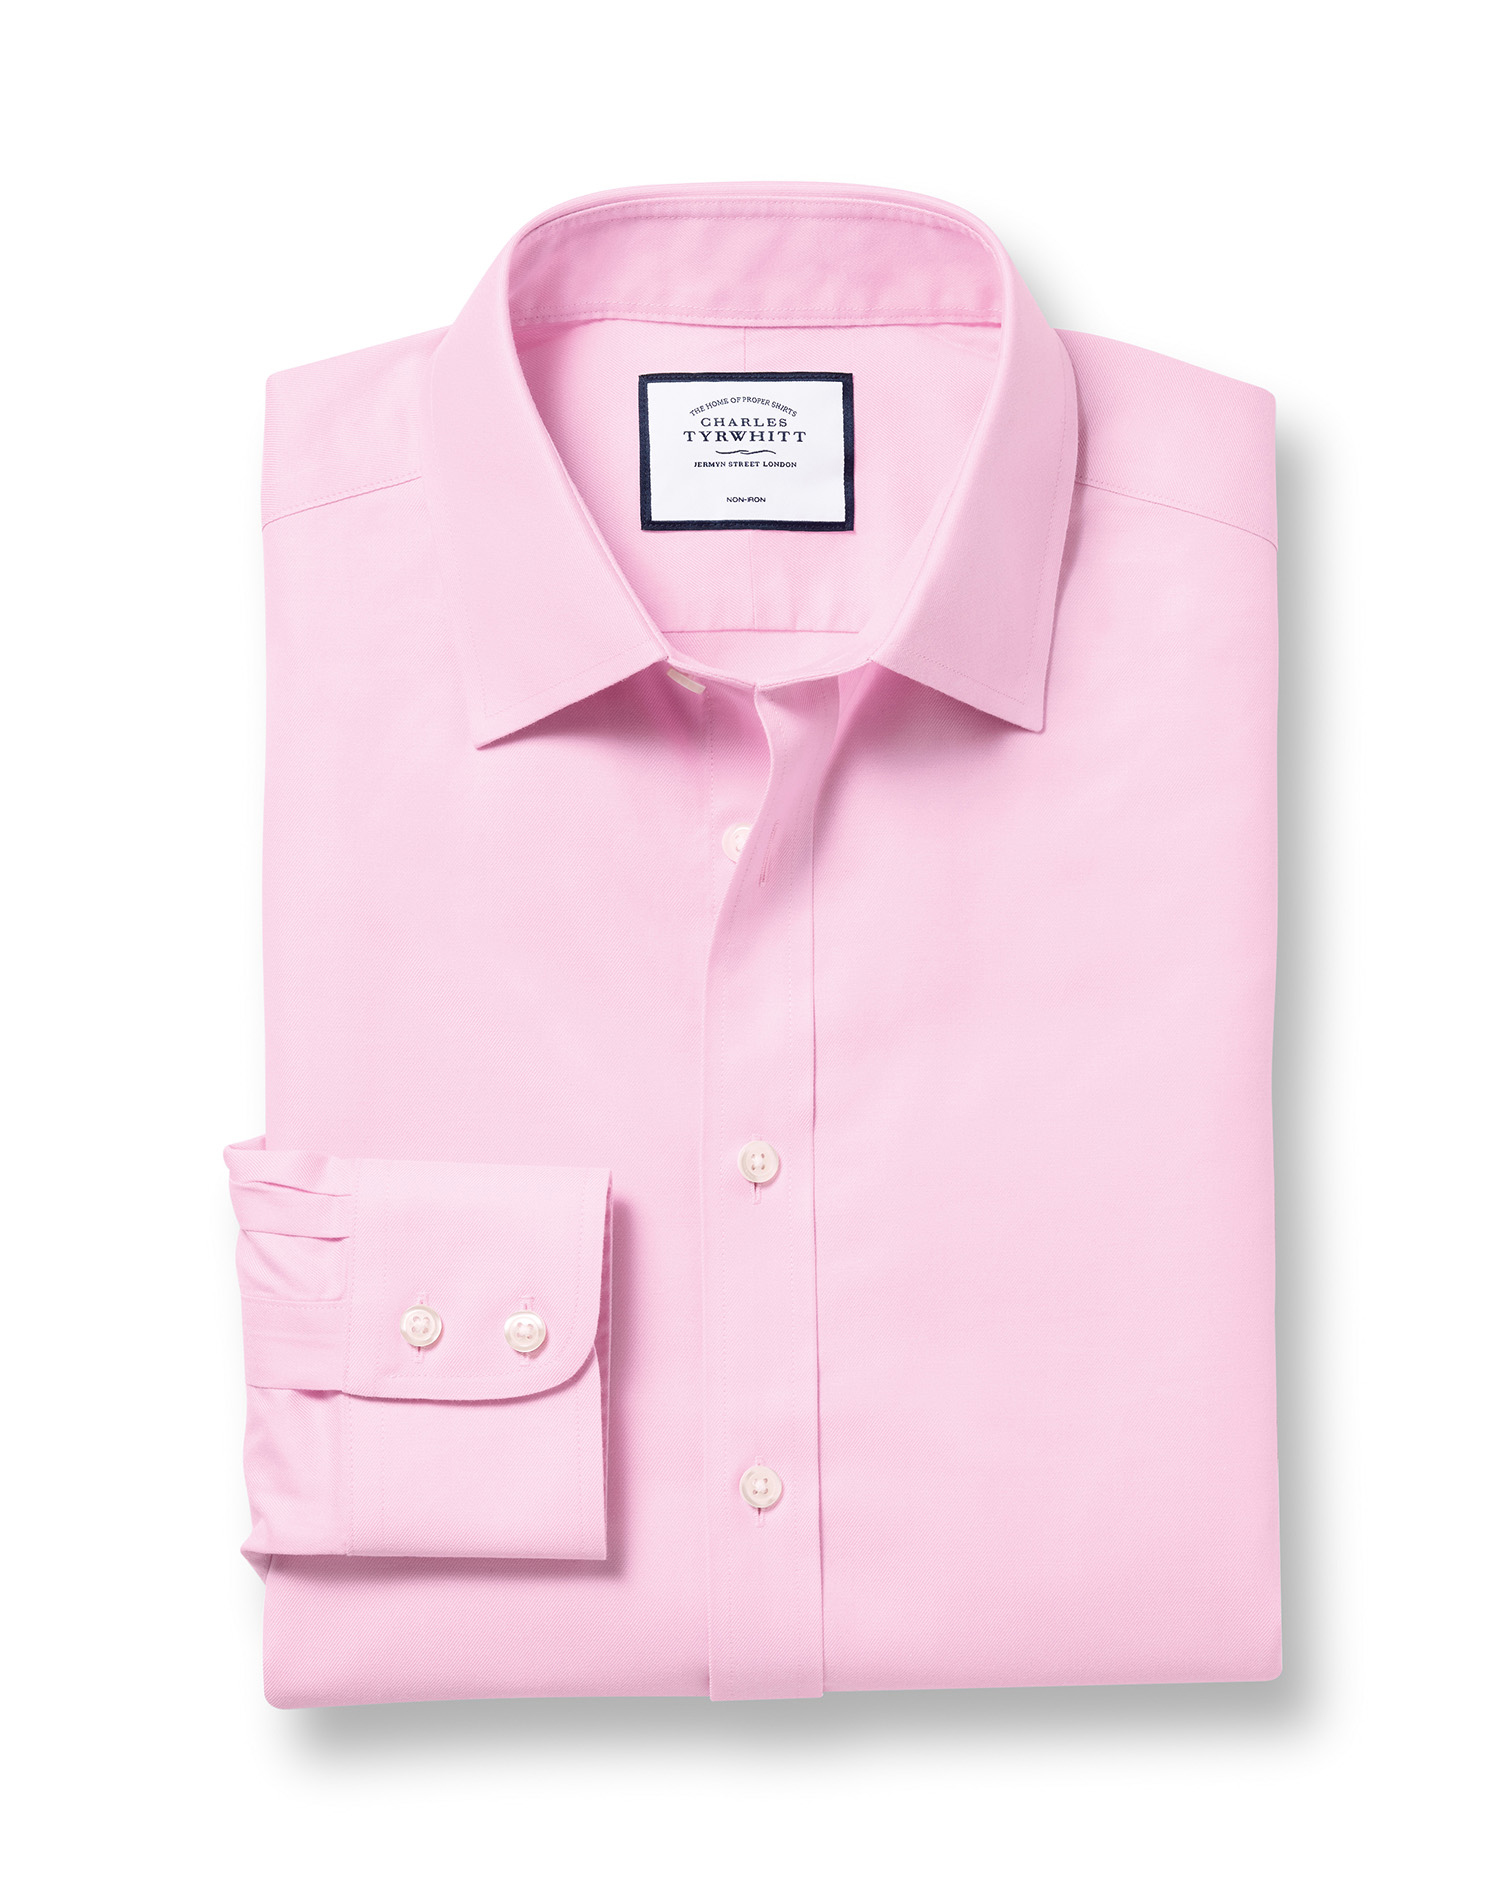 Slim Fit Pink Non-Iron Twill Cotton Formal Shirt Double Cuff Size 16/33 by Charles Tyrwhitt